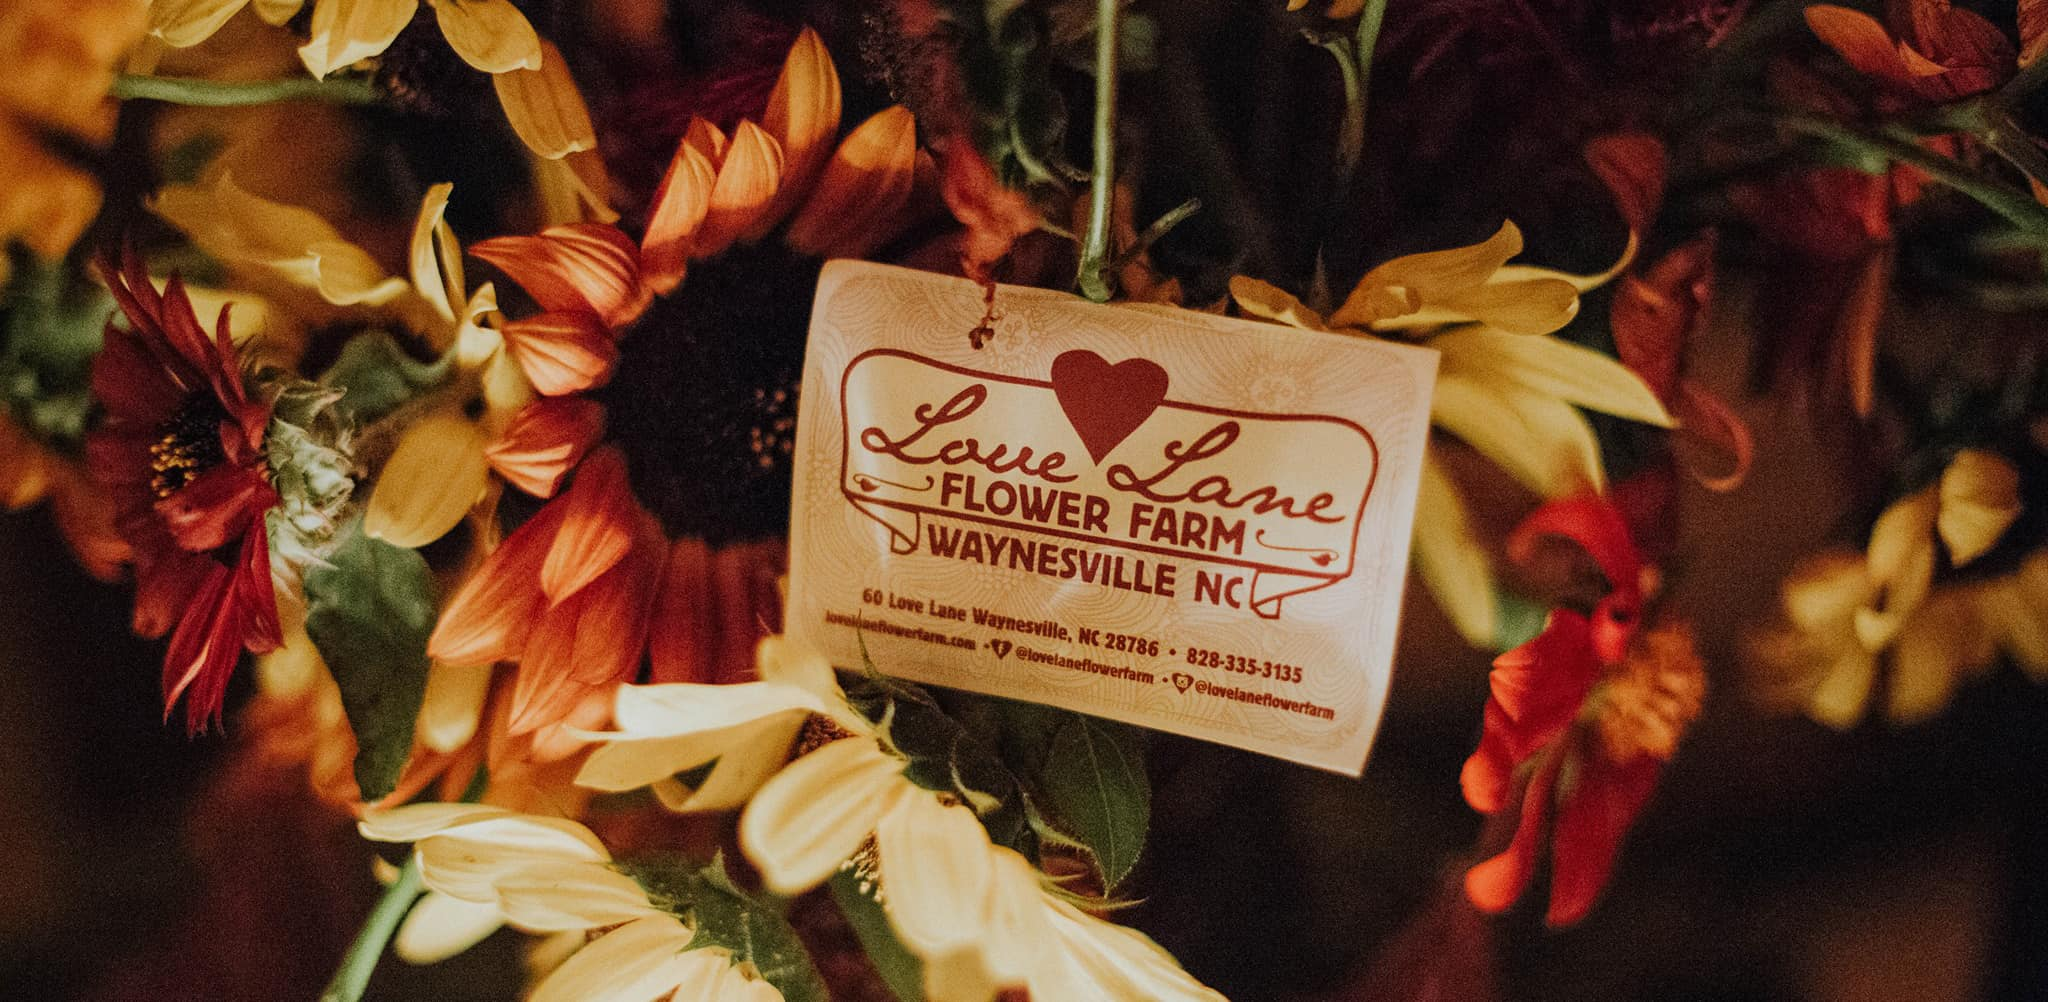 Love Lane Flower Farm